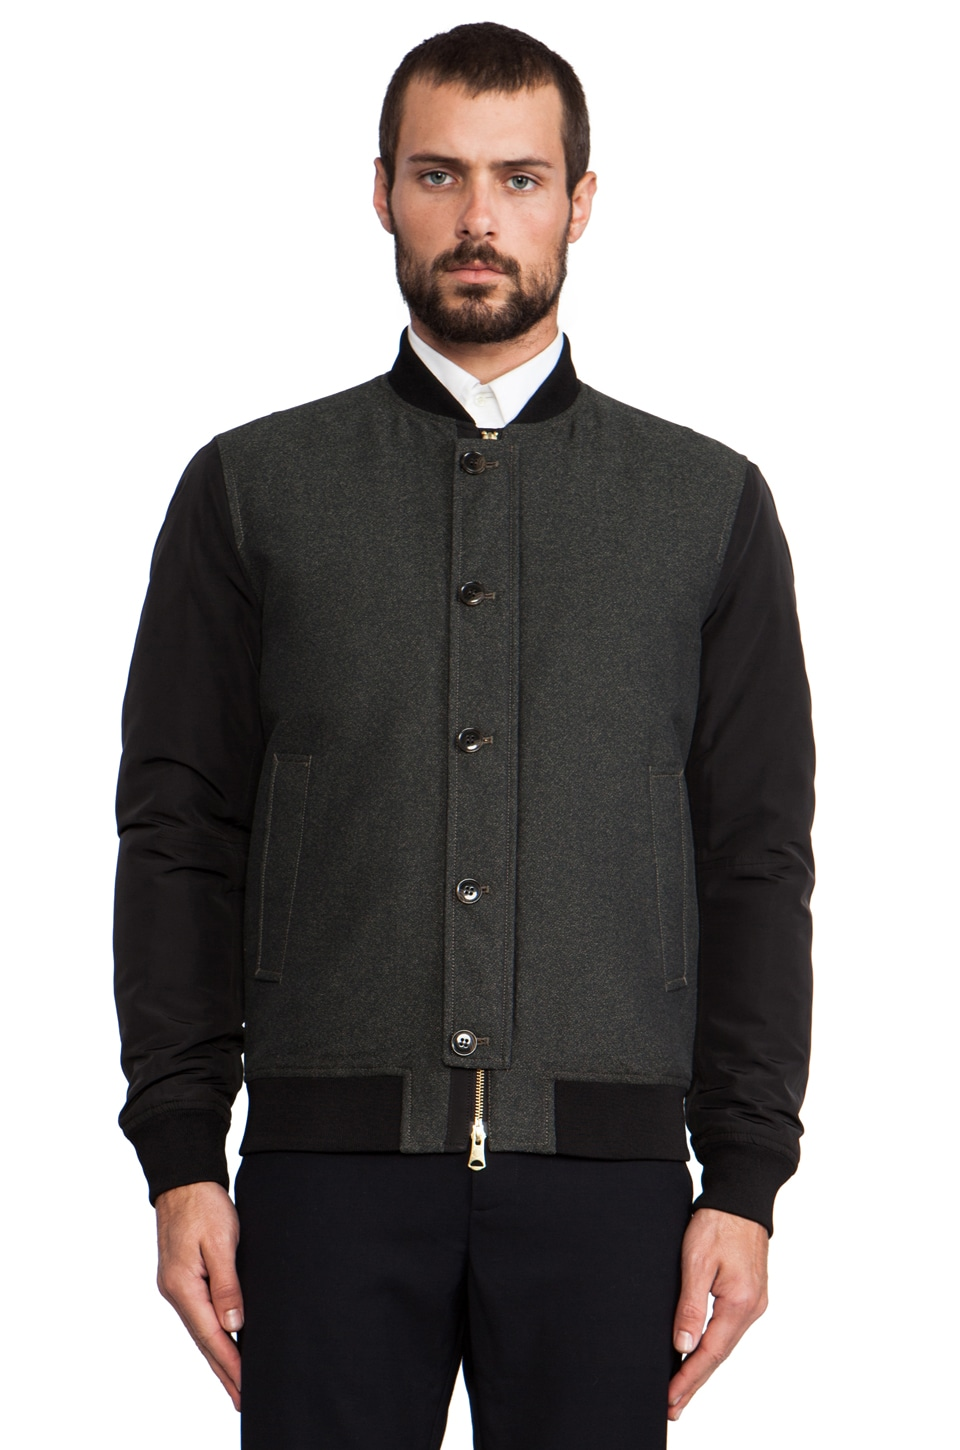 J. Lindeberg Ola Jacket in Dark Green